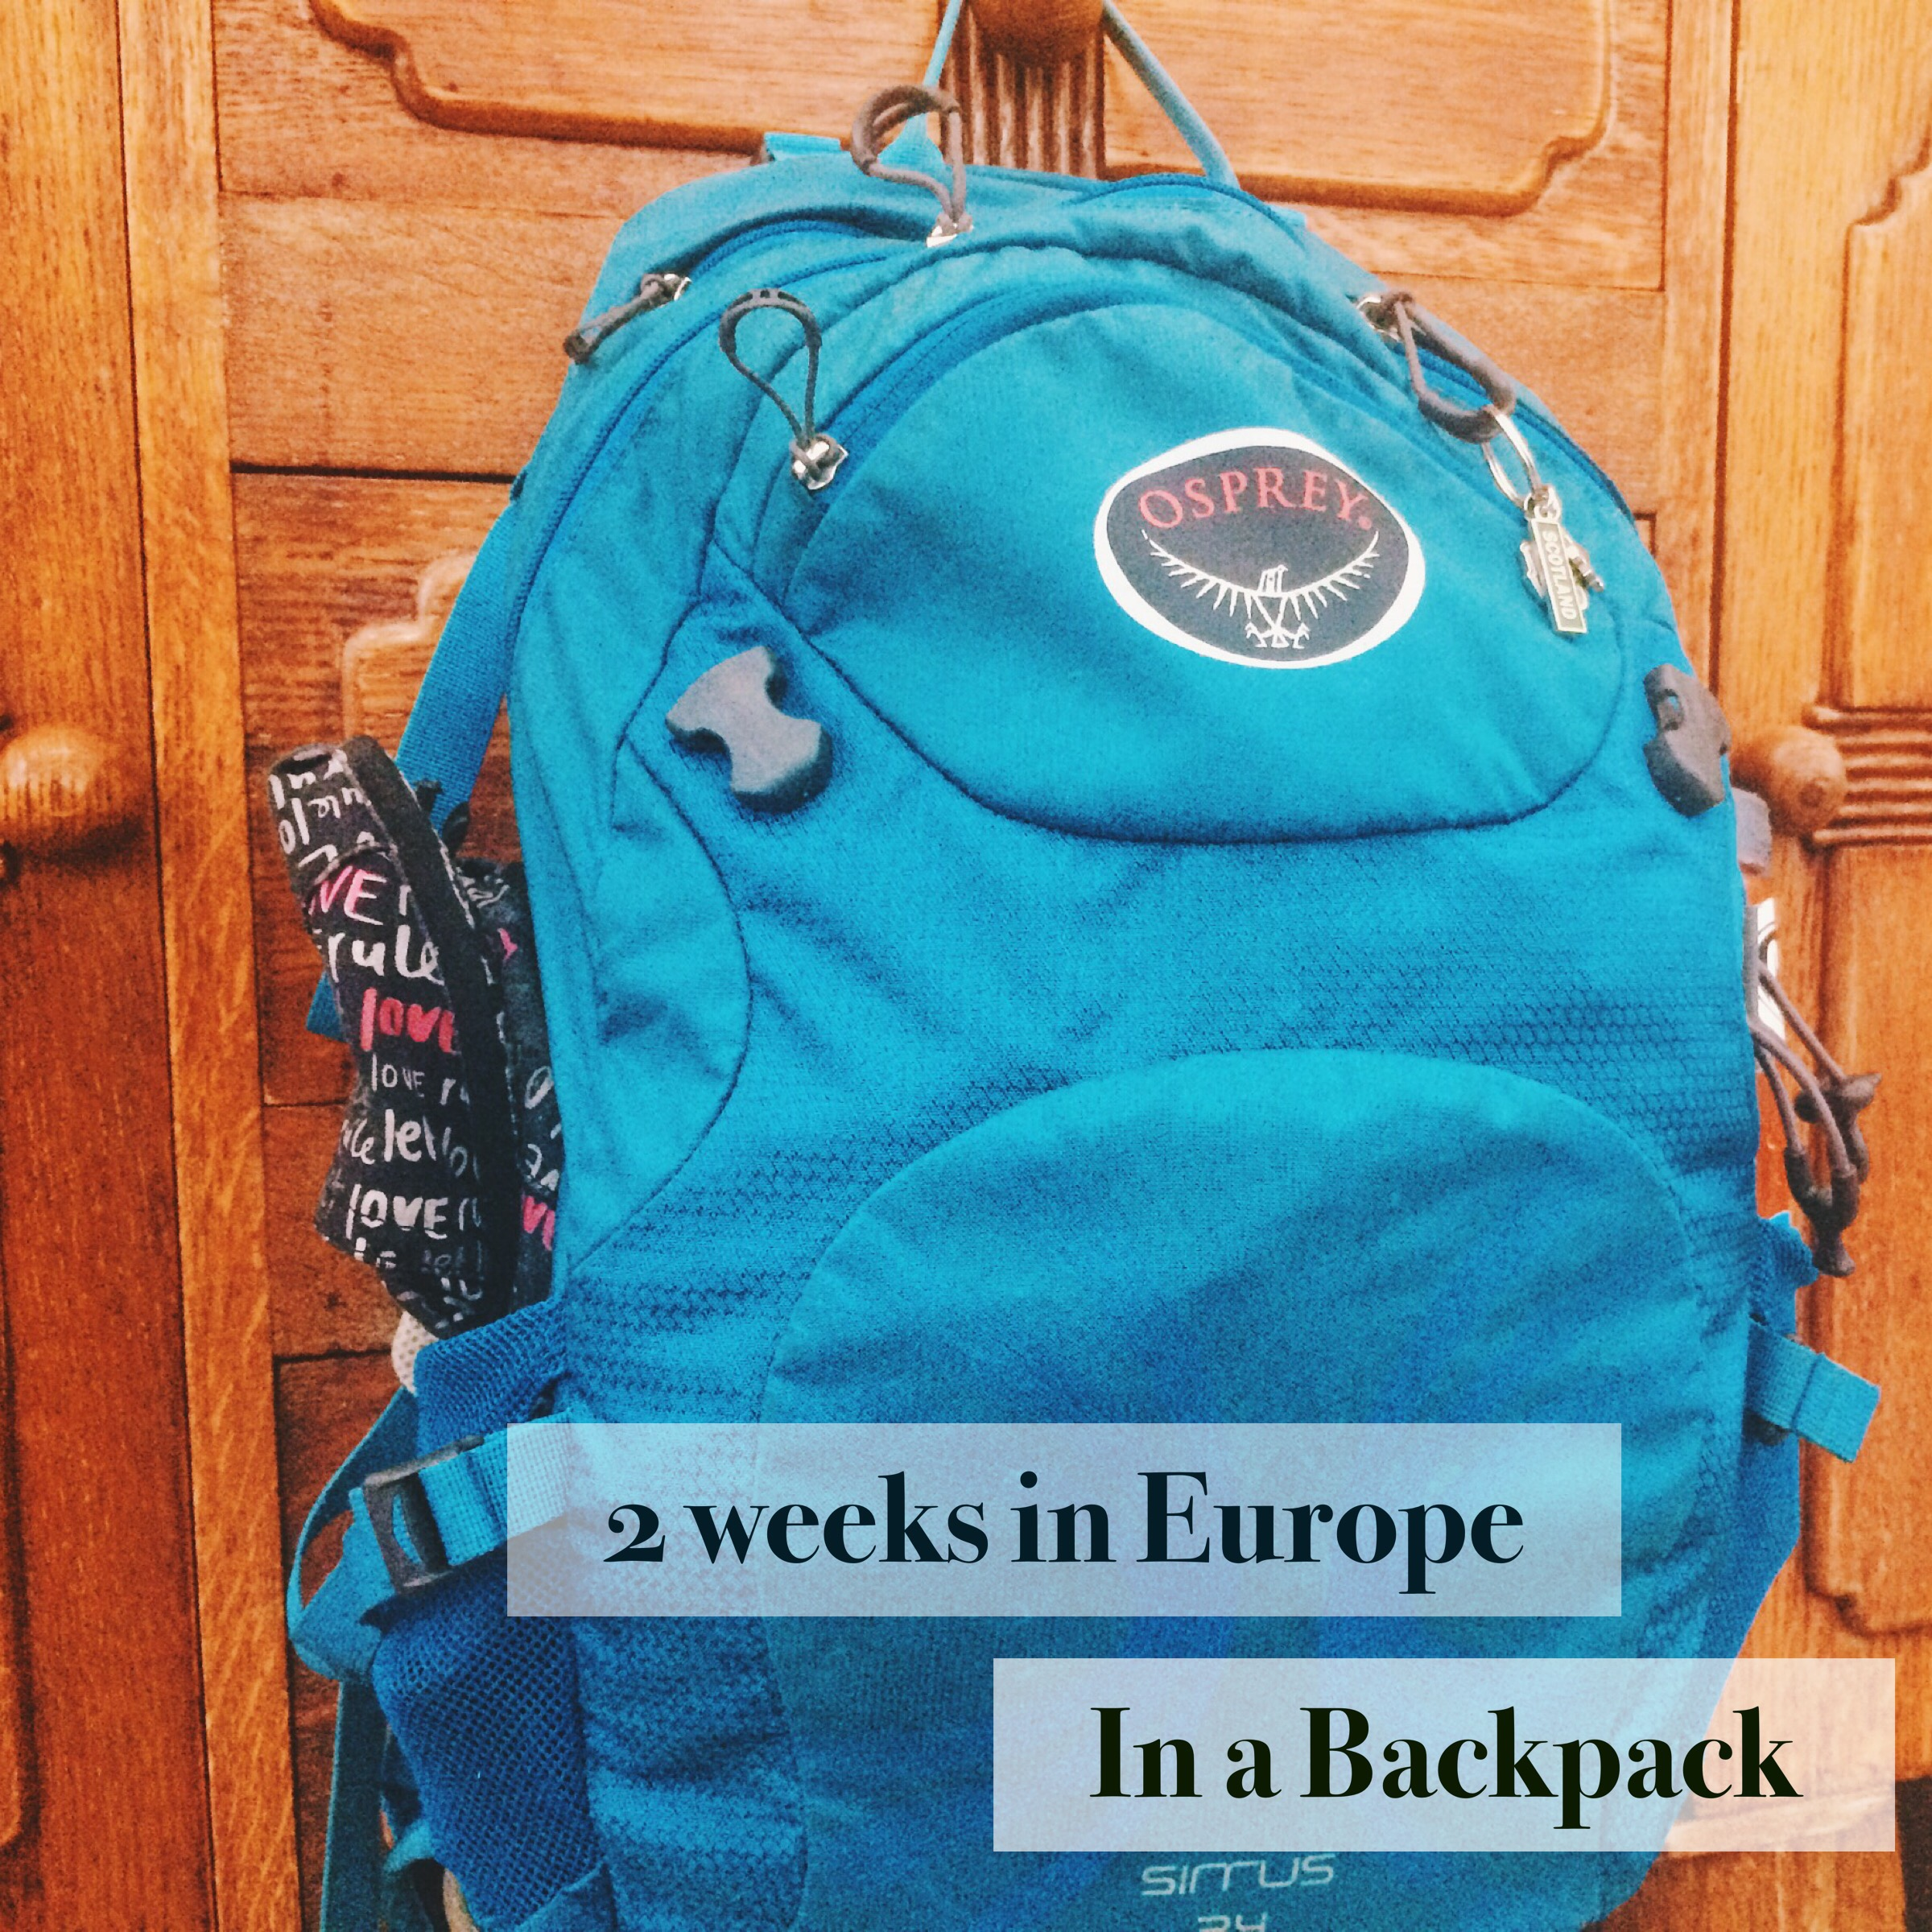 Packing Light, AlisonChino.com, Europe, UK, Travel